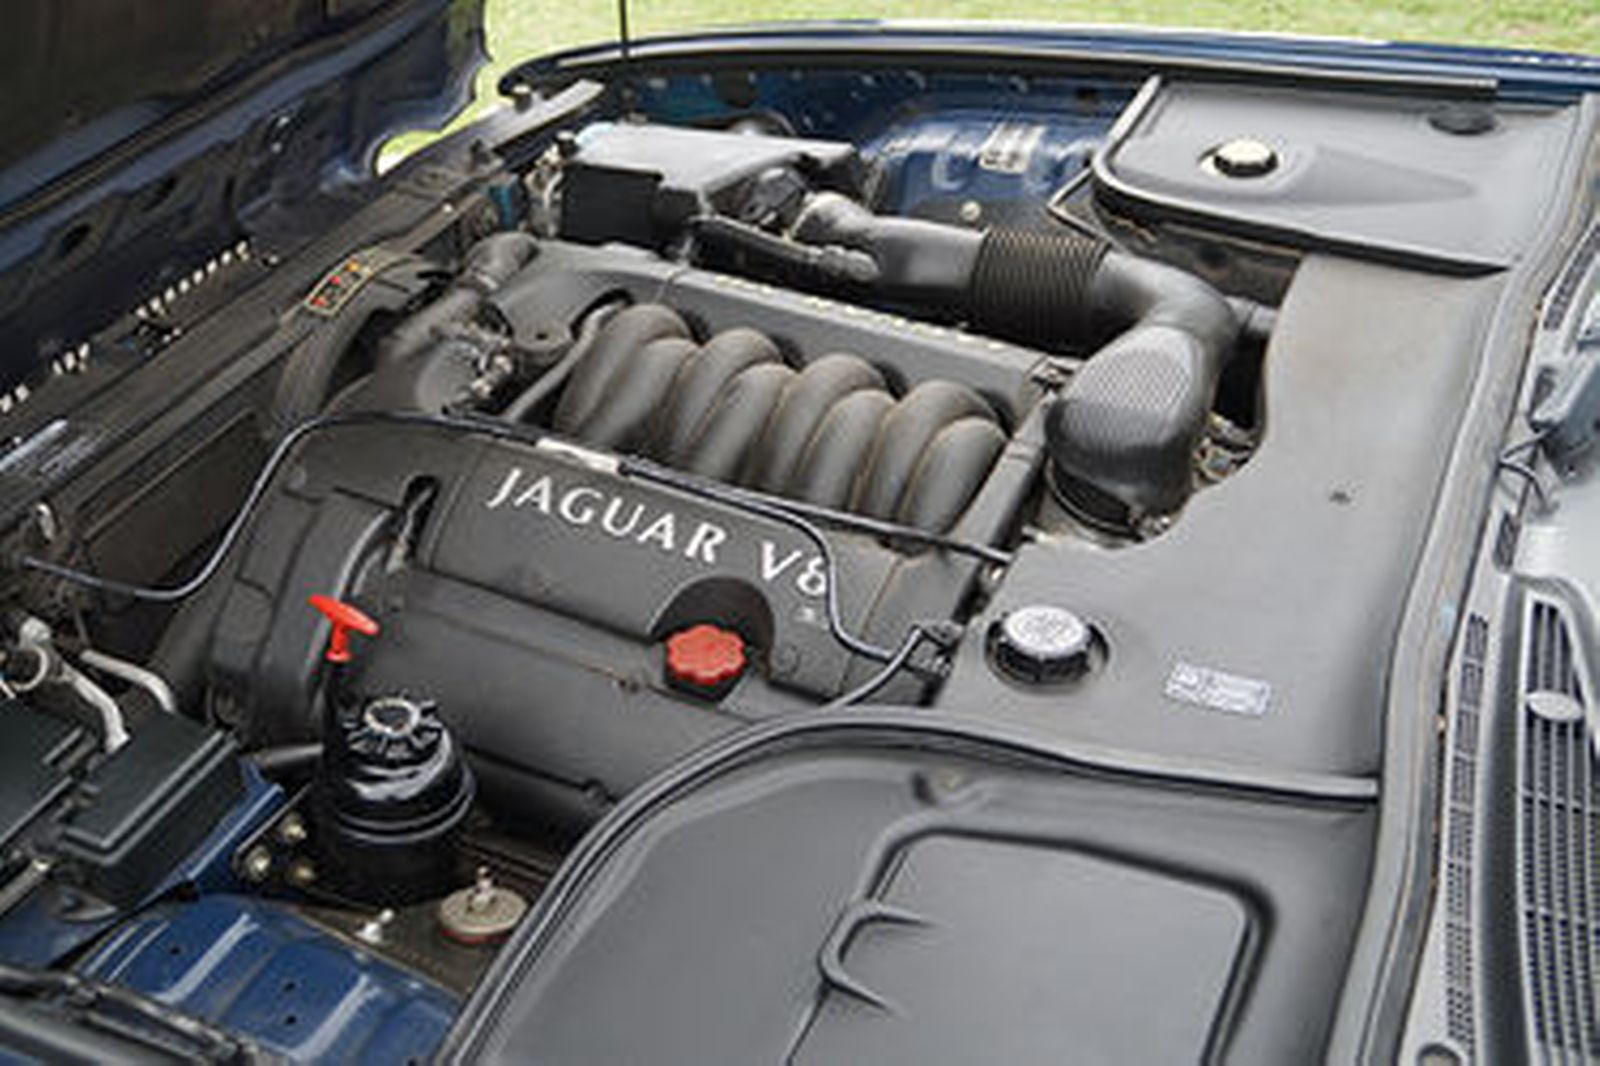 Jaguar Sovereign 3.2 V8 Saloon